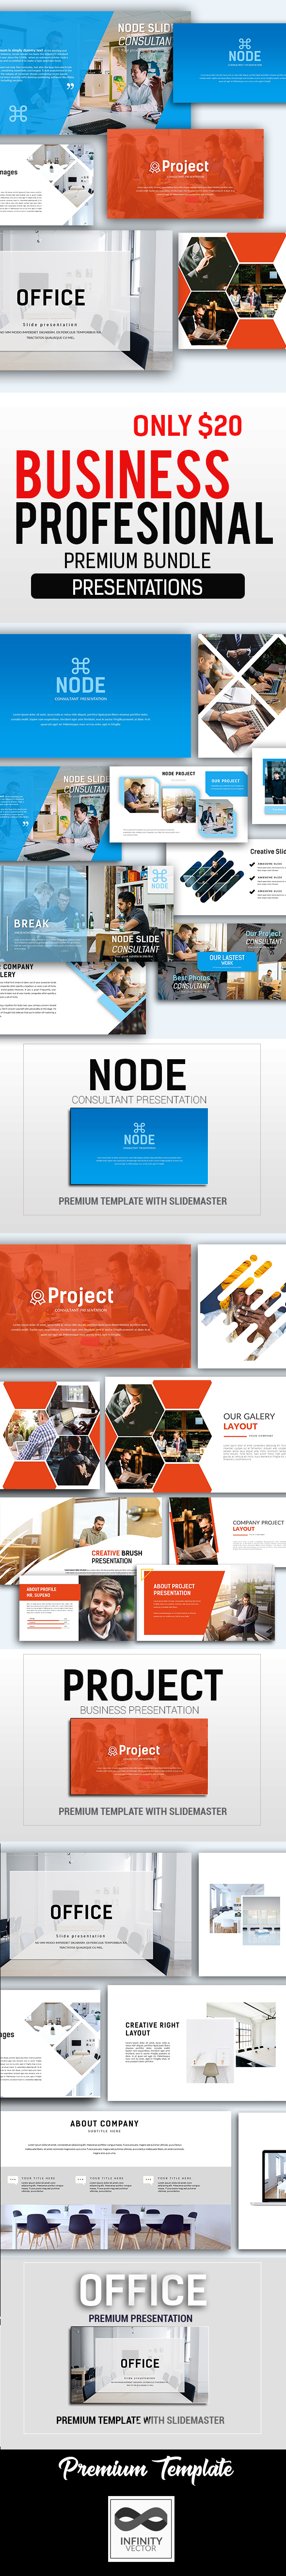 Business Professional Bundle - PowerPoint Templates Presentation Templates